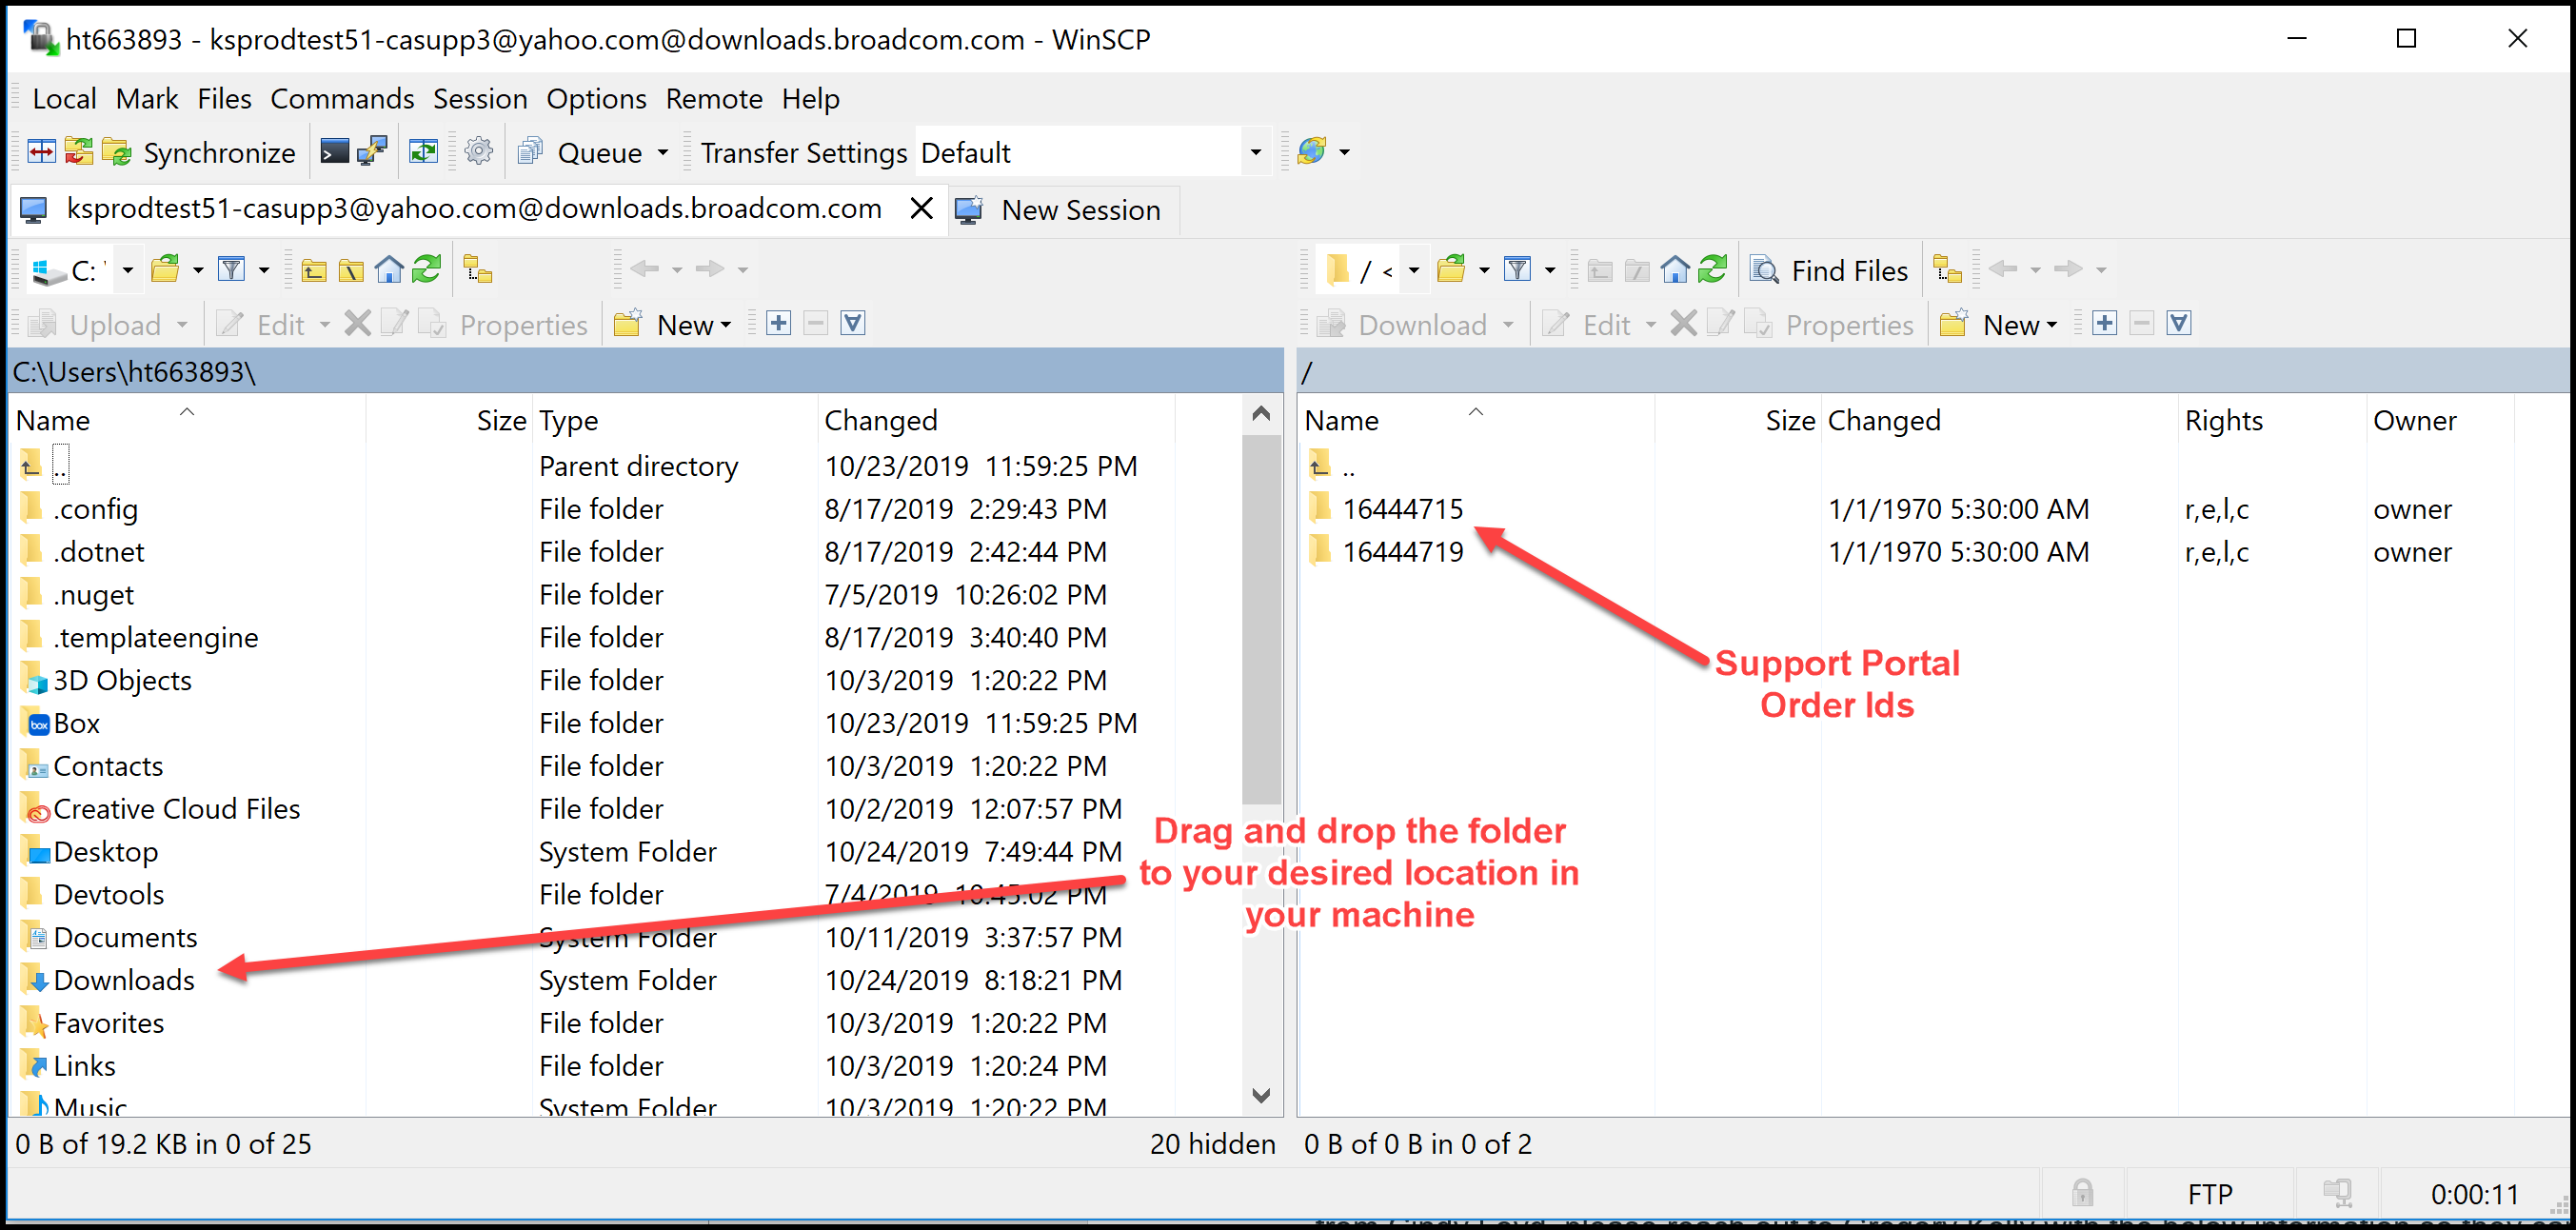 CA Support Portal FTP Downloads using WinSCP